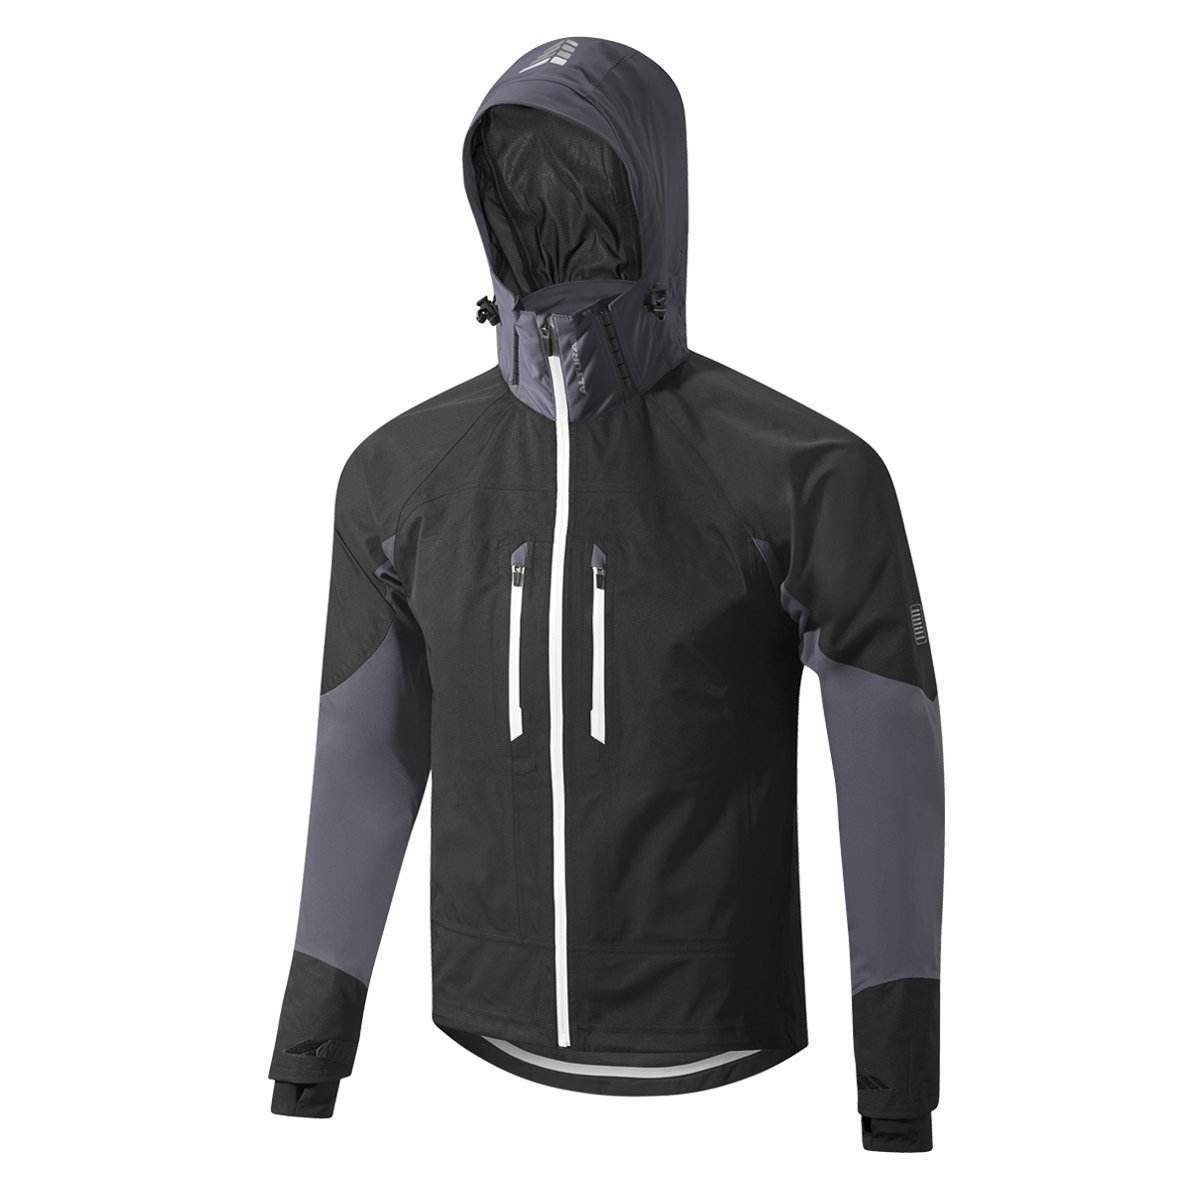 Attack 360 Waterproof Jacket Small Altura 5034948081451